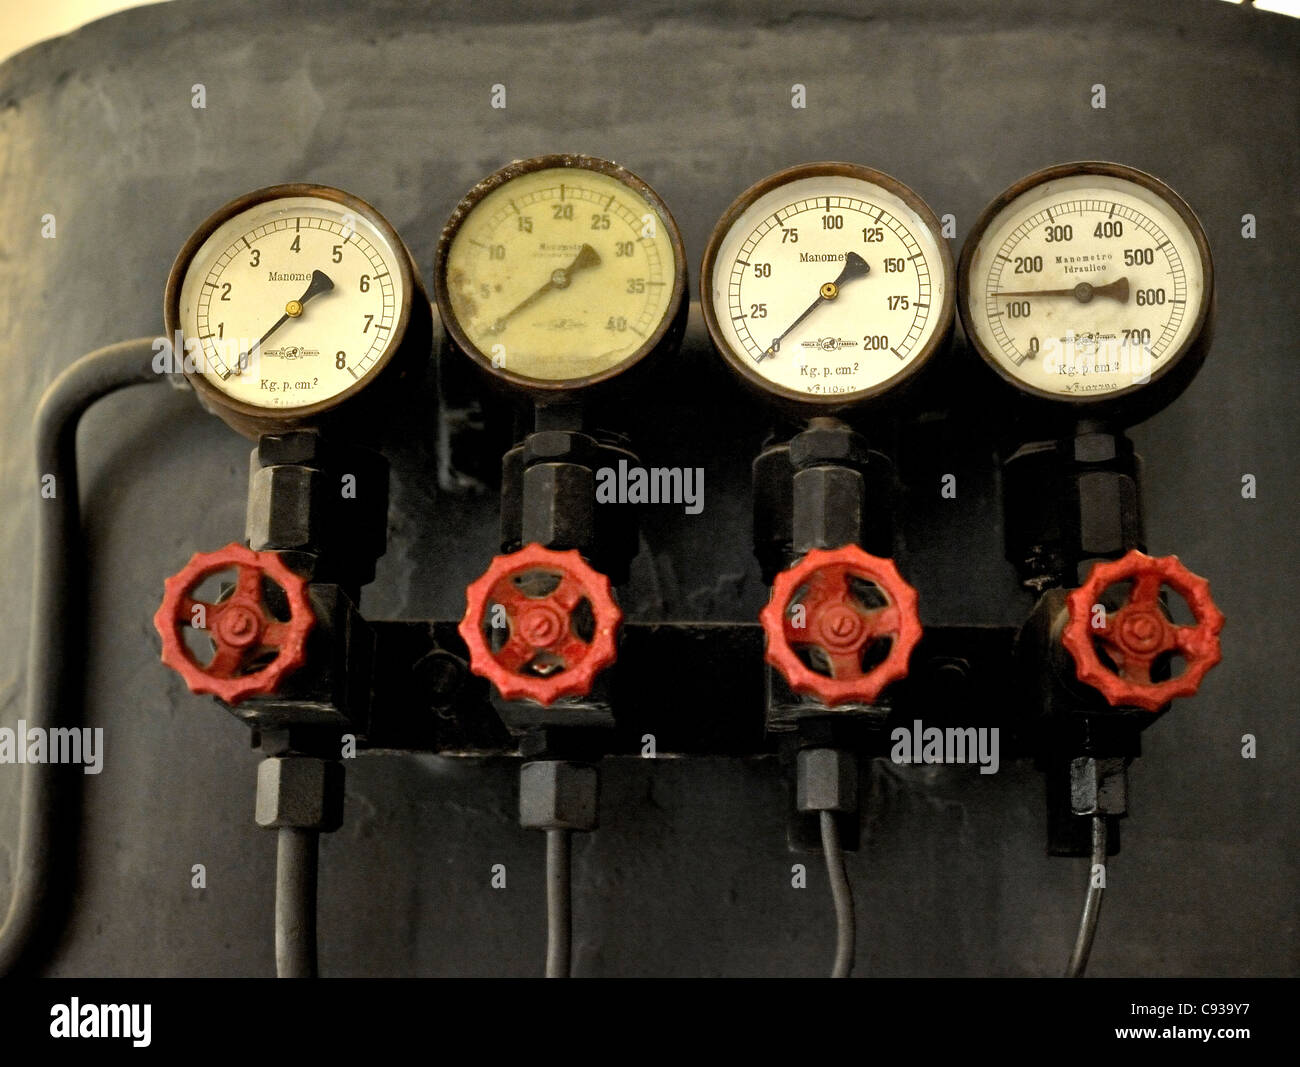 Machinery instruments. - Stock Image